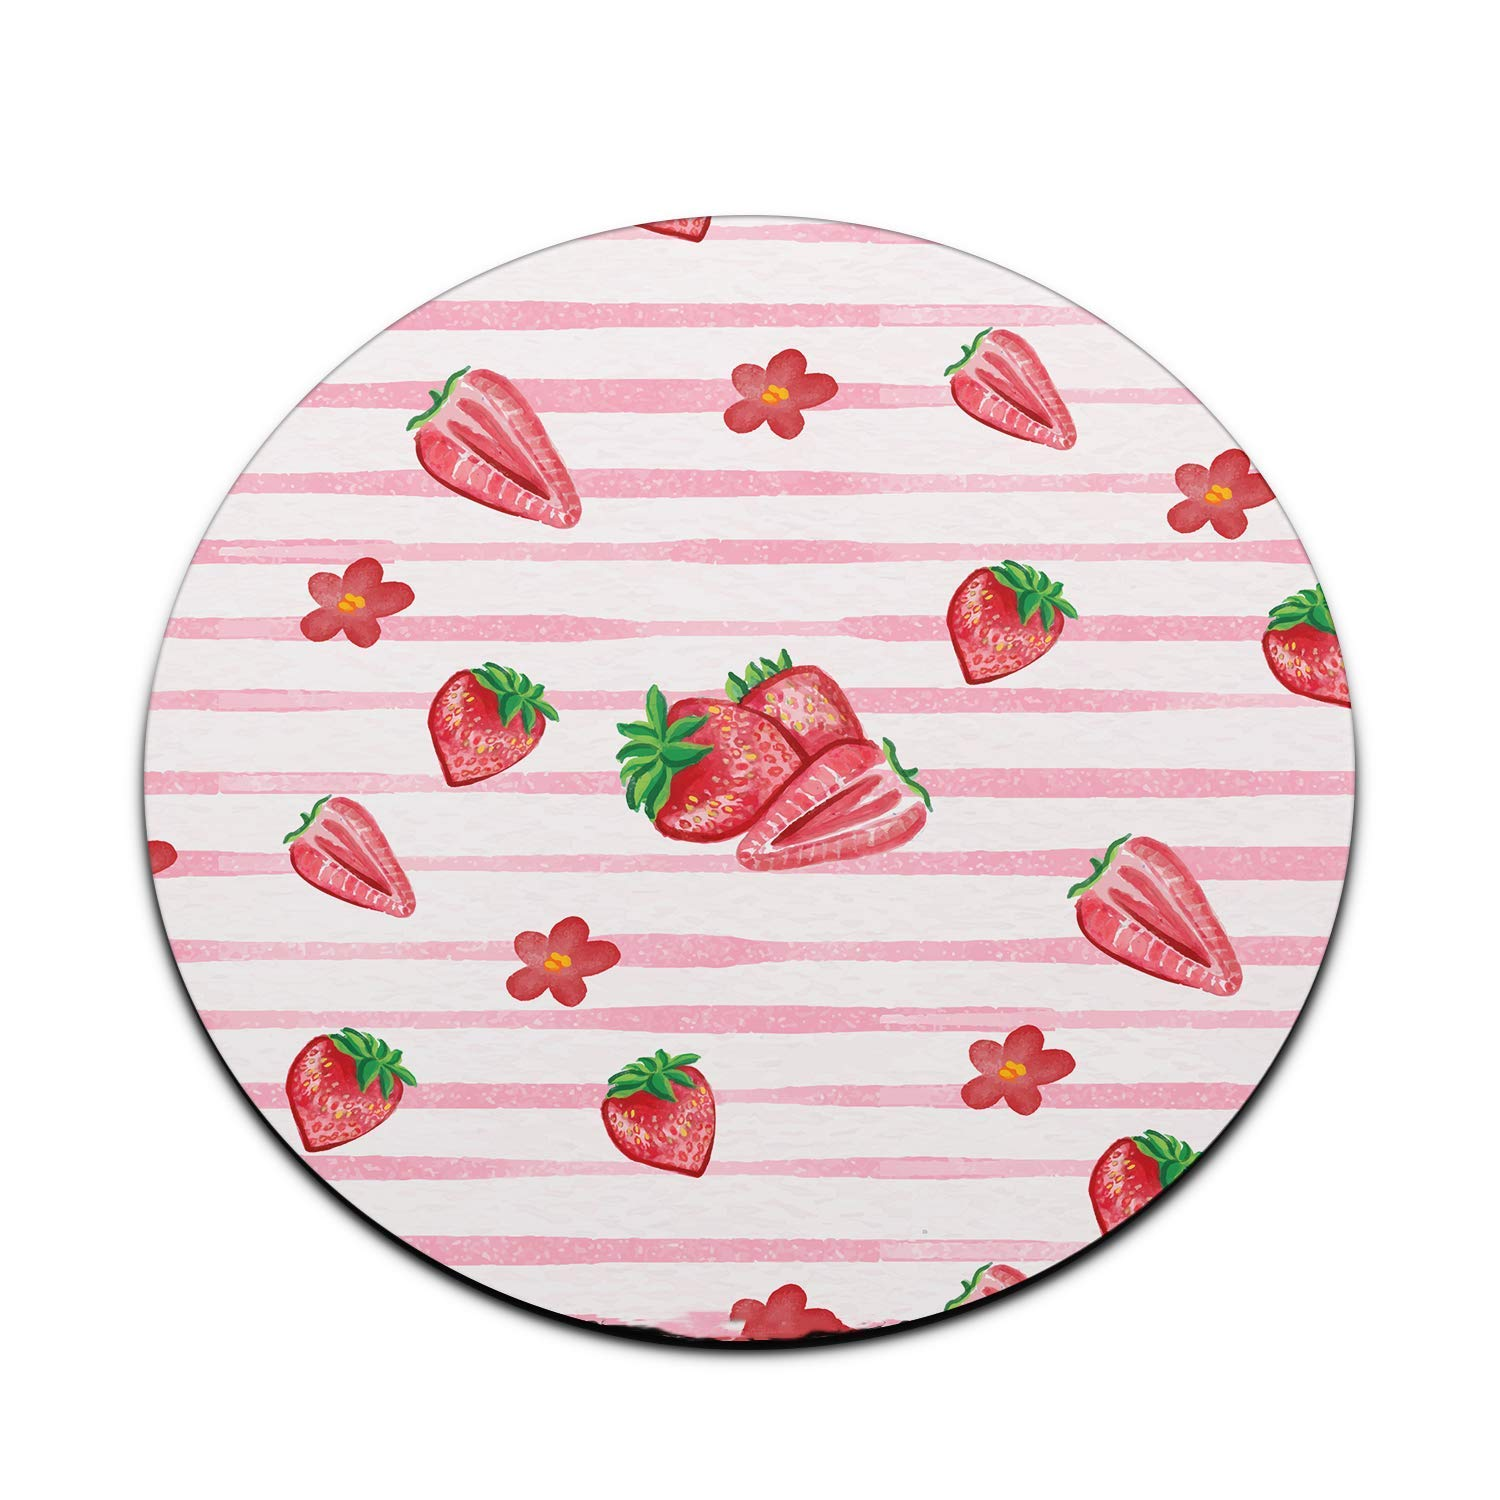 Mousepad Watercolor Strawberries Mouse Pad Cute Pink Womens Desk Accessories Office Supplies Berries Strawberry Gift for Coworker Boss A577